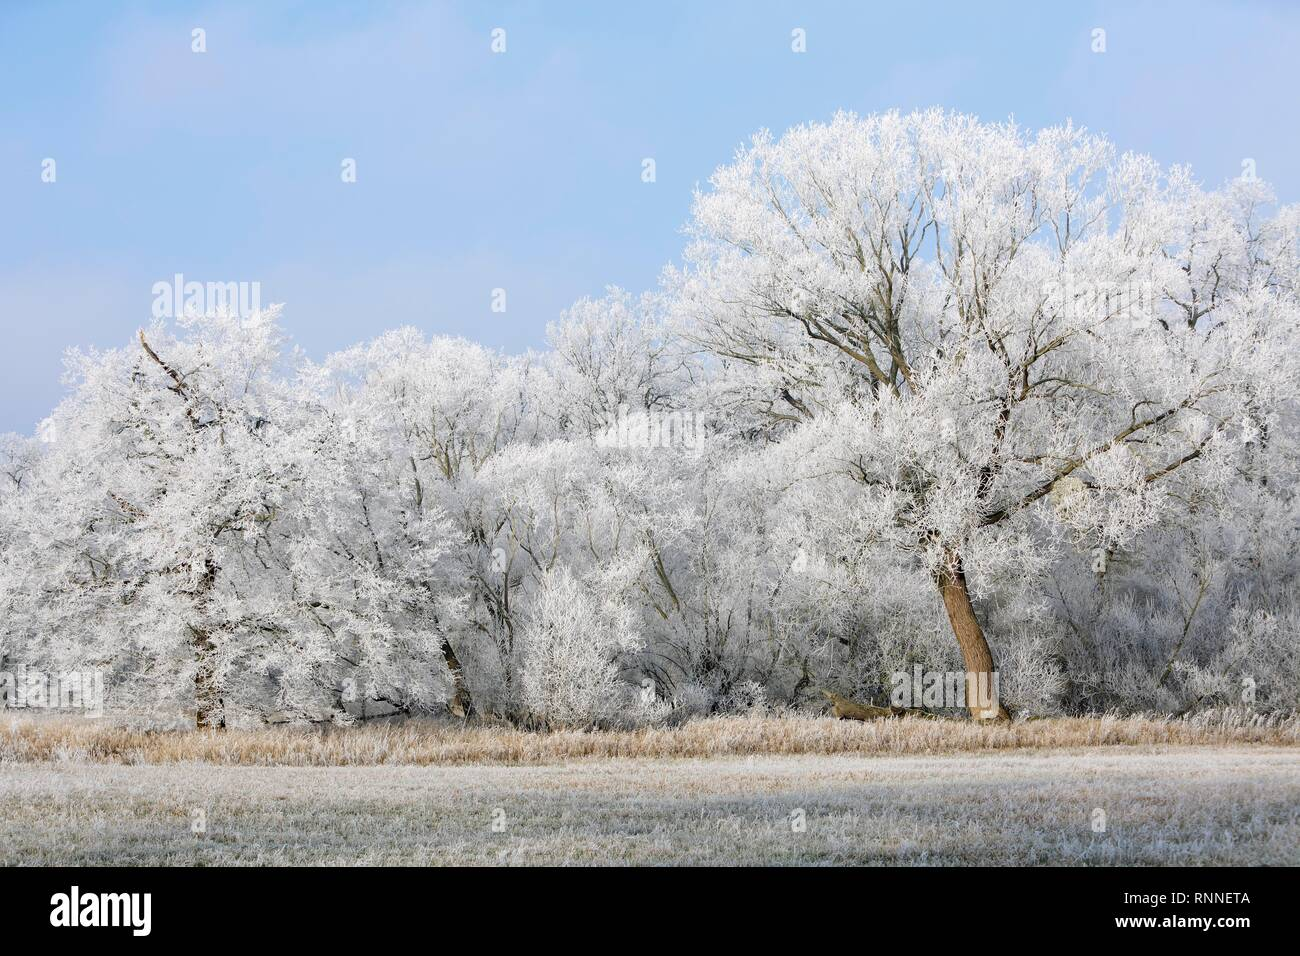 Winter in the Elbaue, deciduous trees covered with hoar frost, Middle Elbe Biosphere Reserve, Saxony-Anhalt, Germany Stock Photo